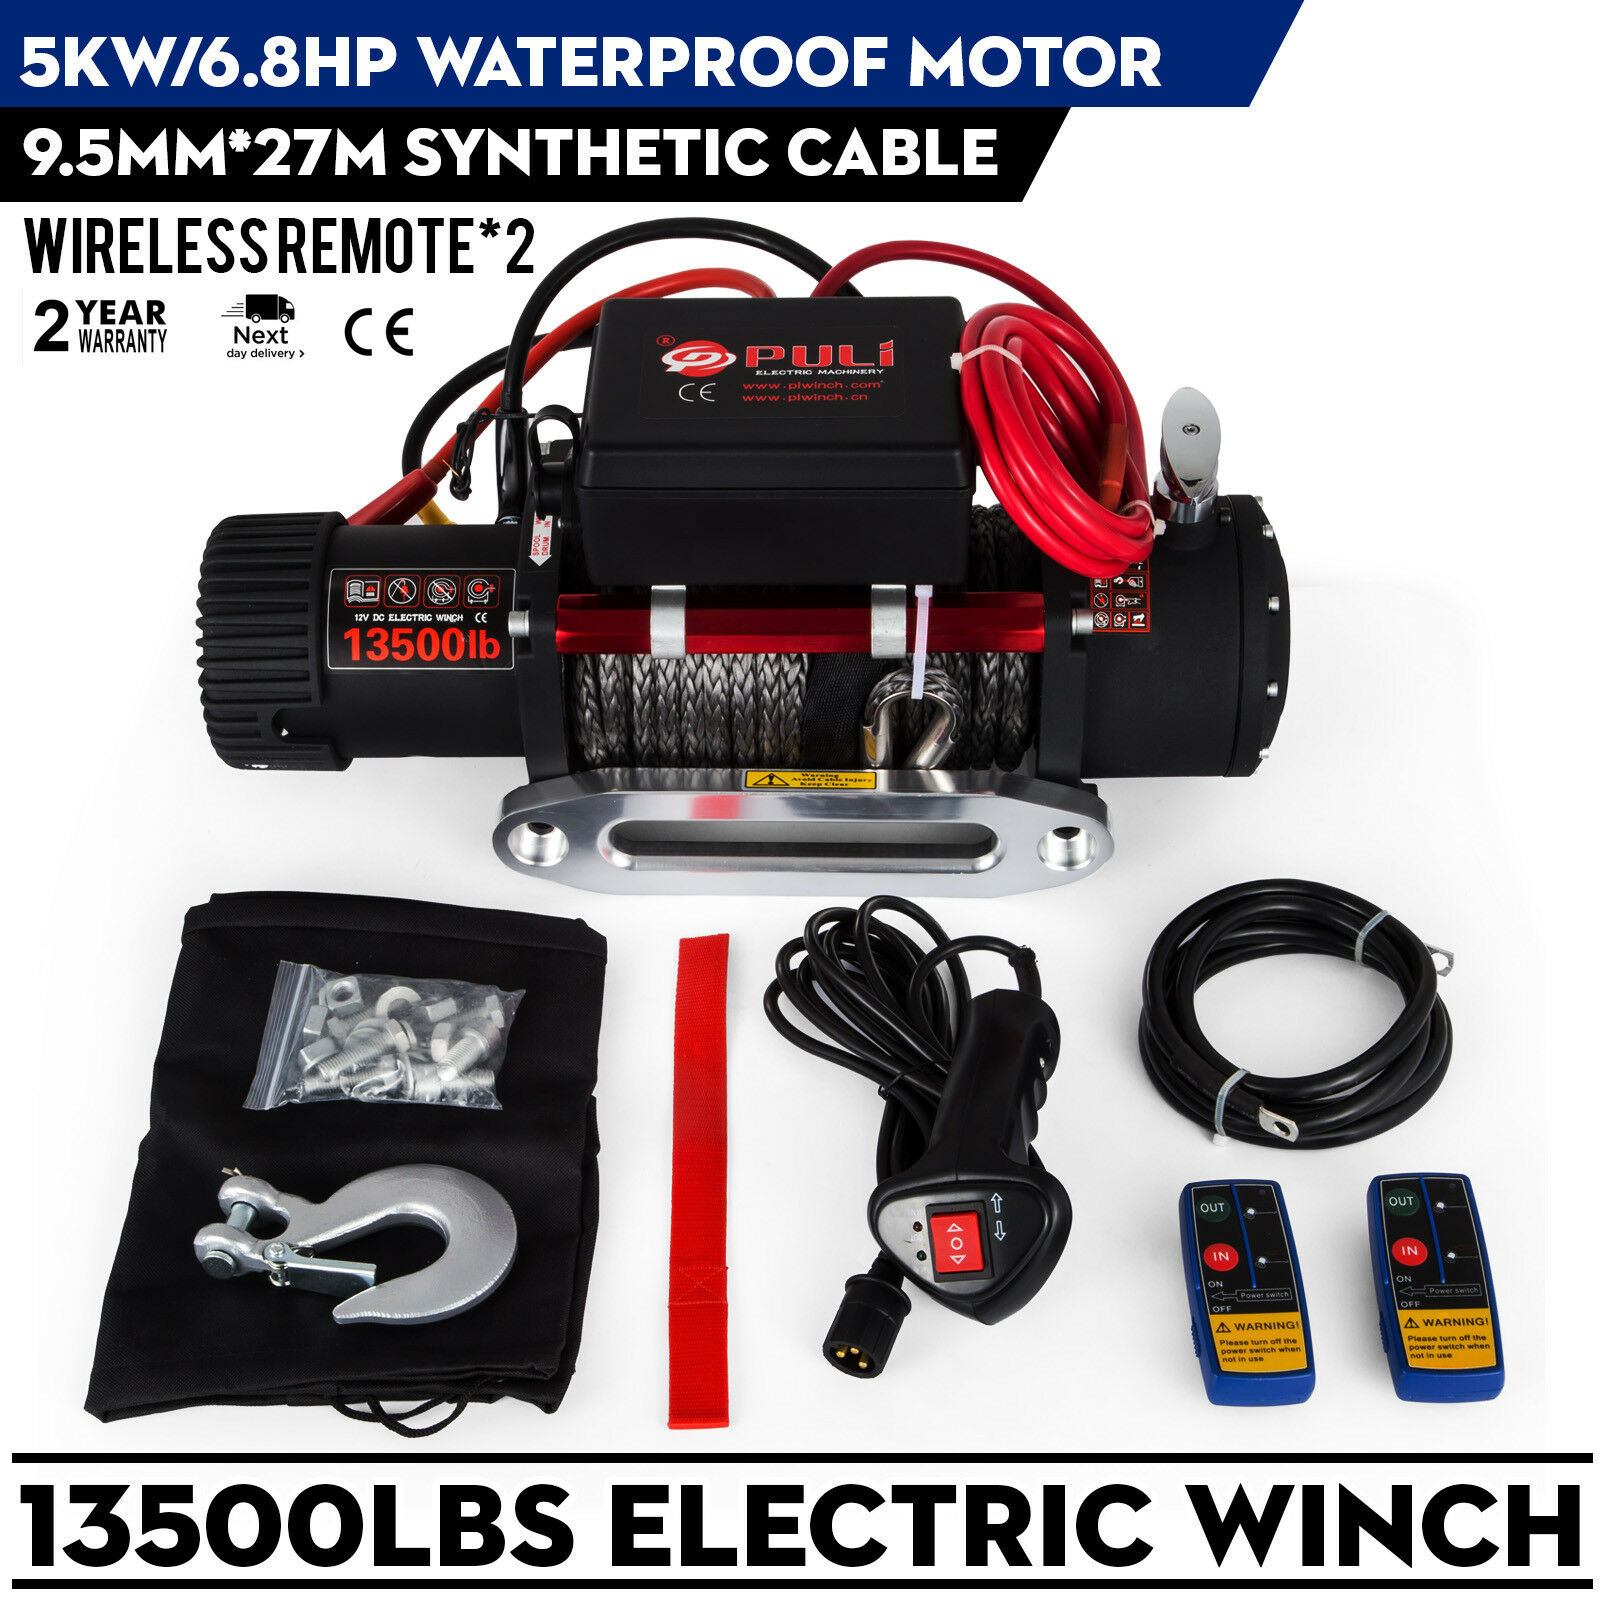 Free Shipping For EU RU 12 V Electric Windlass 13500lbs 6123.5 Kg Synthetic Rope With Remote Control